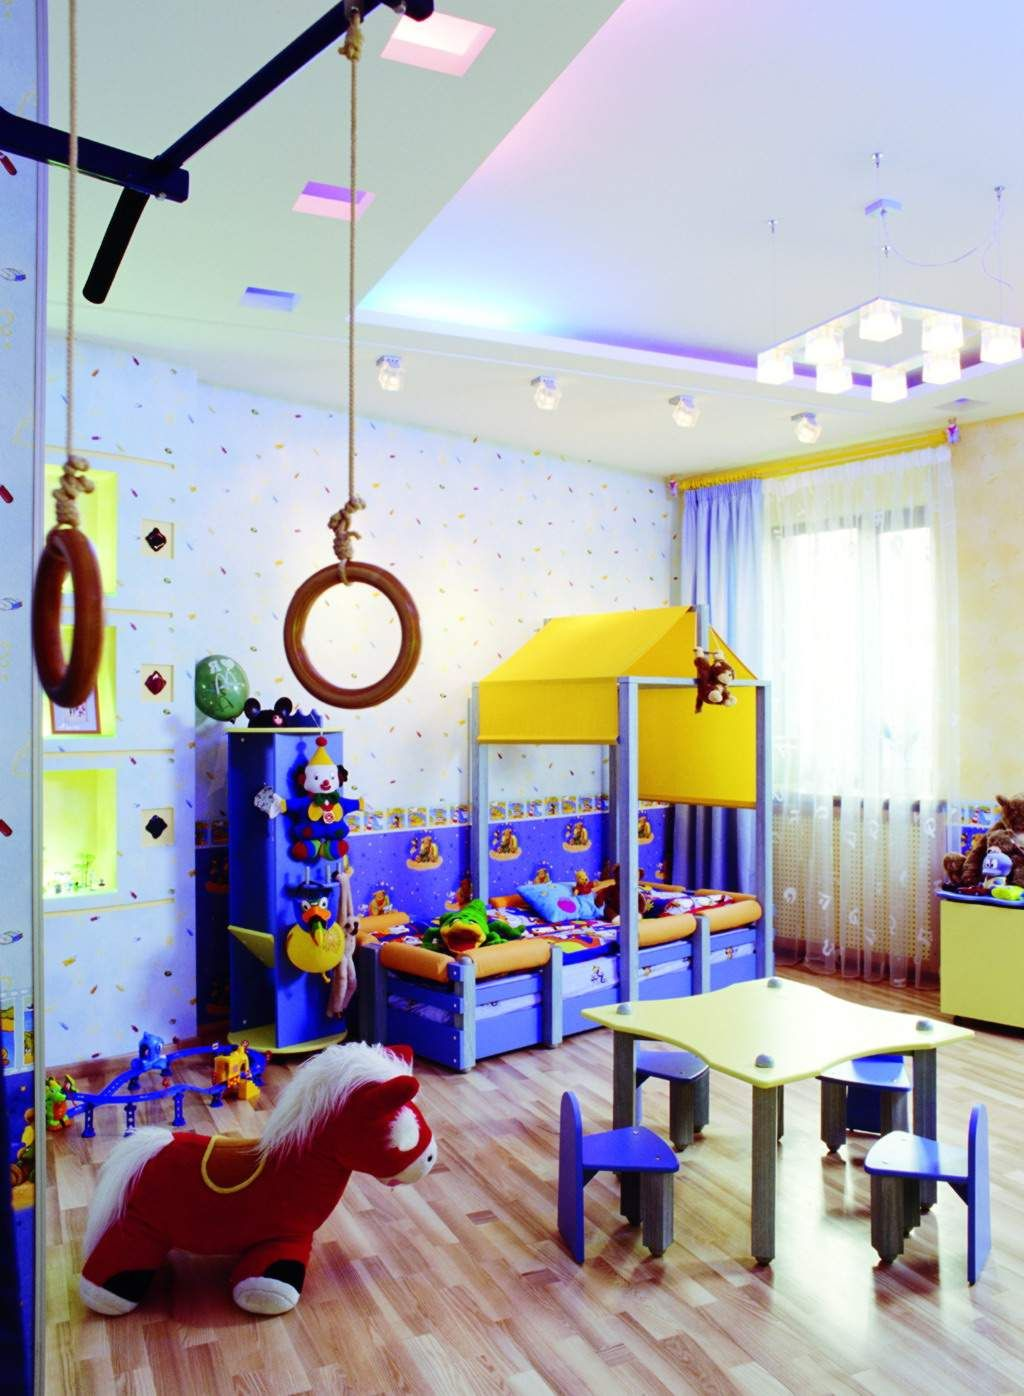 Kids bedroom kids room interior design with play and learn for Childrens bedroom ideas boys